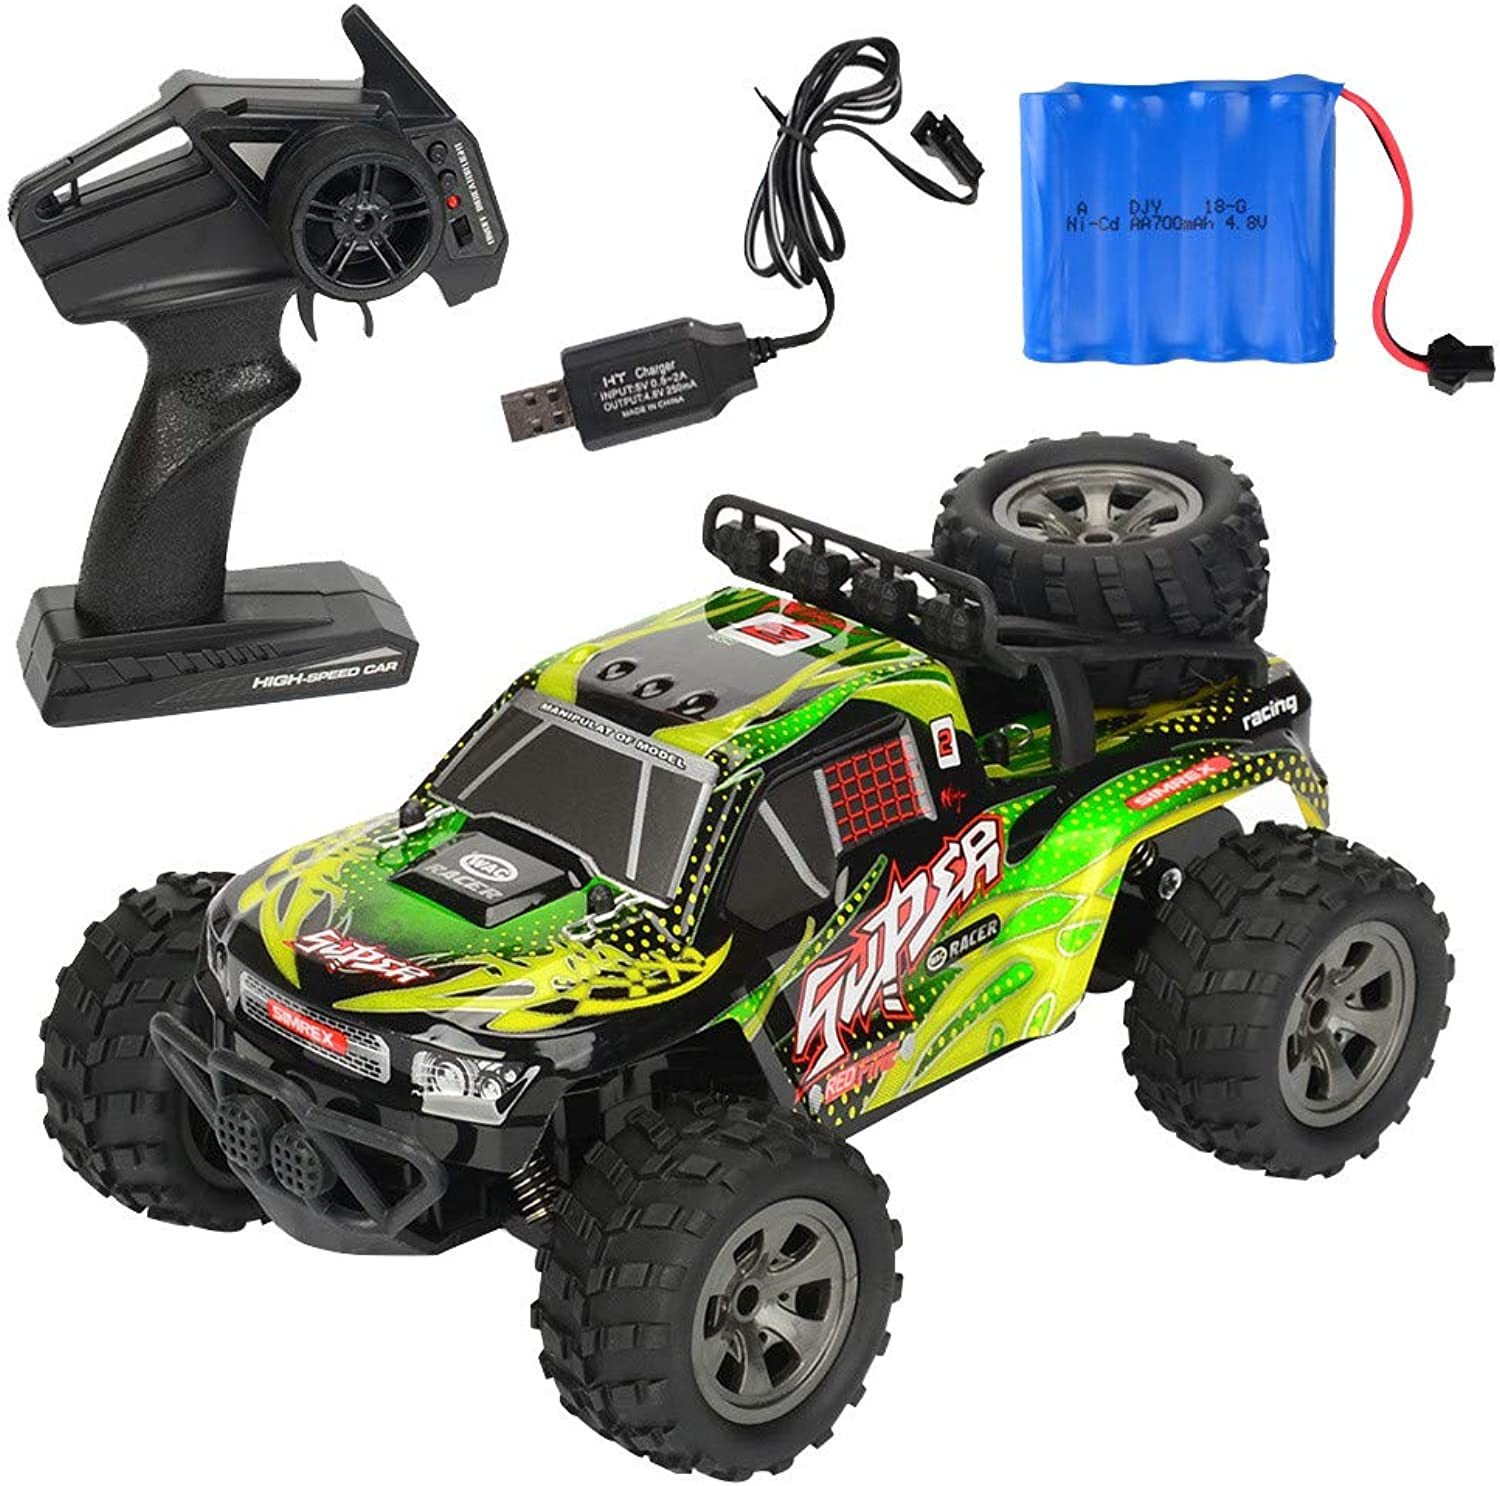 Cimaybeauty 1 18 2.4G Remote Control Off-Road Monster Truck High Speed RTR RC Car Toy